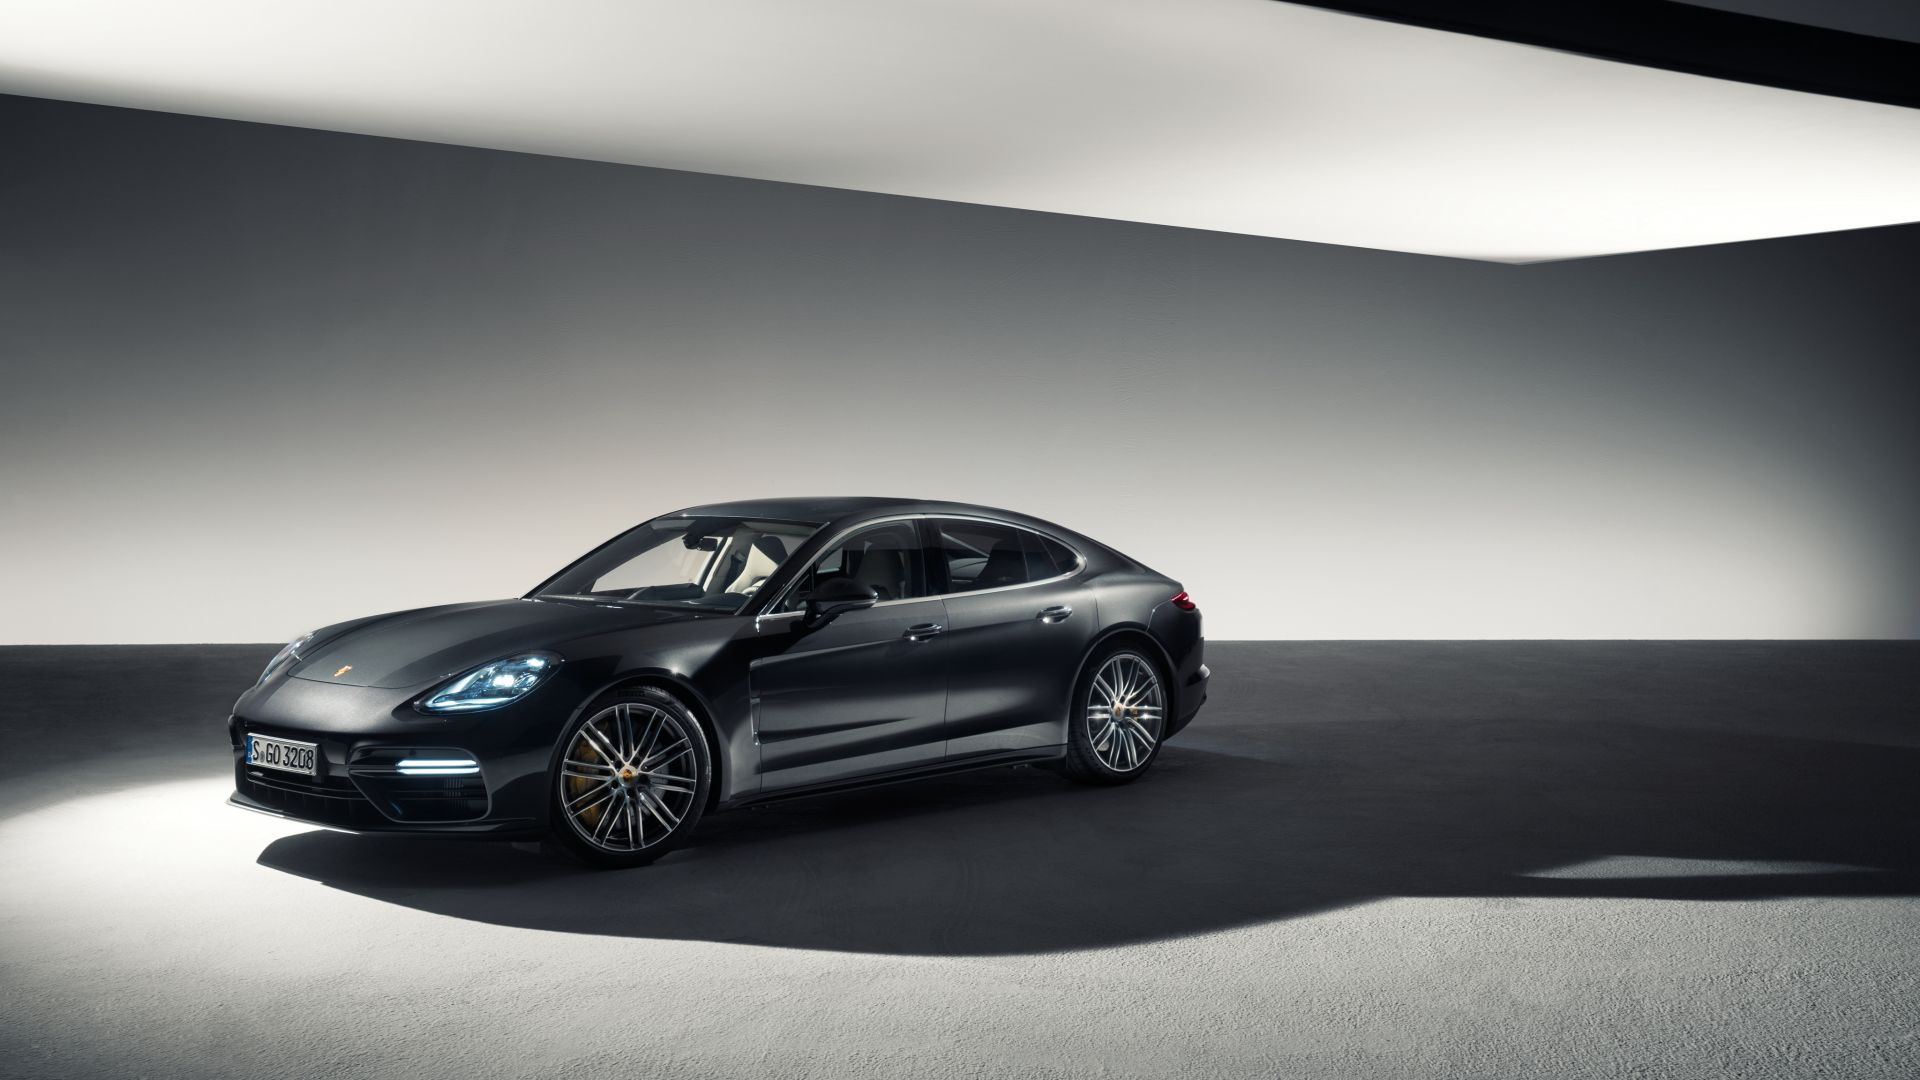 Порш Панамера Турбо, седан, черный, Porsche Panamera Turbo, sedan, black